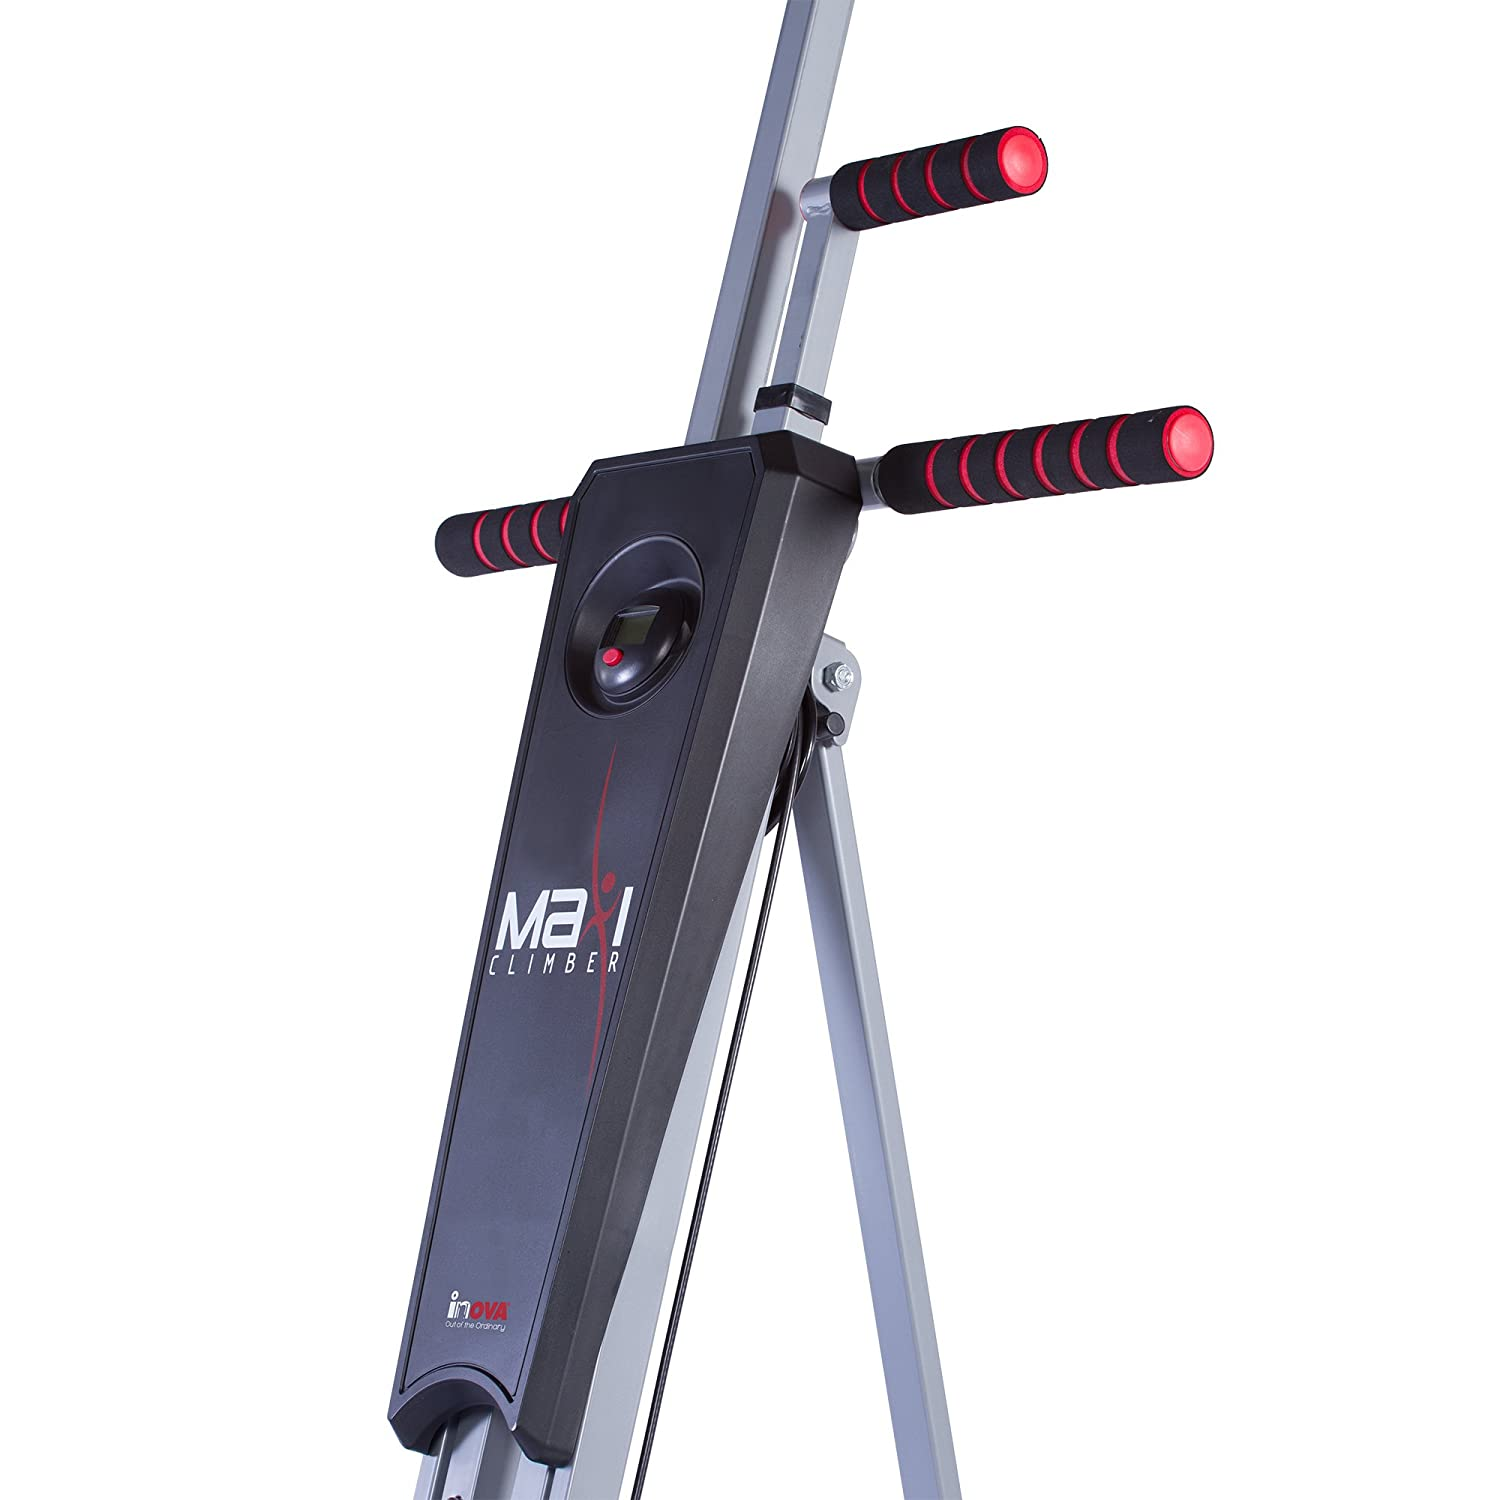 Best Climber Machine Reviews